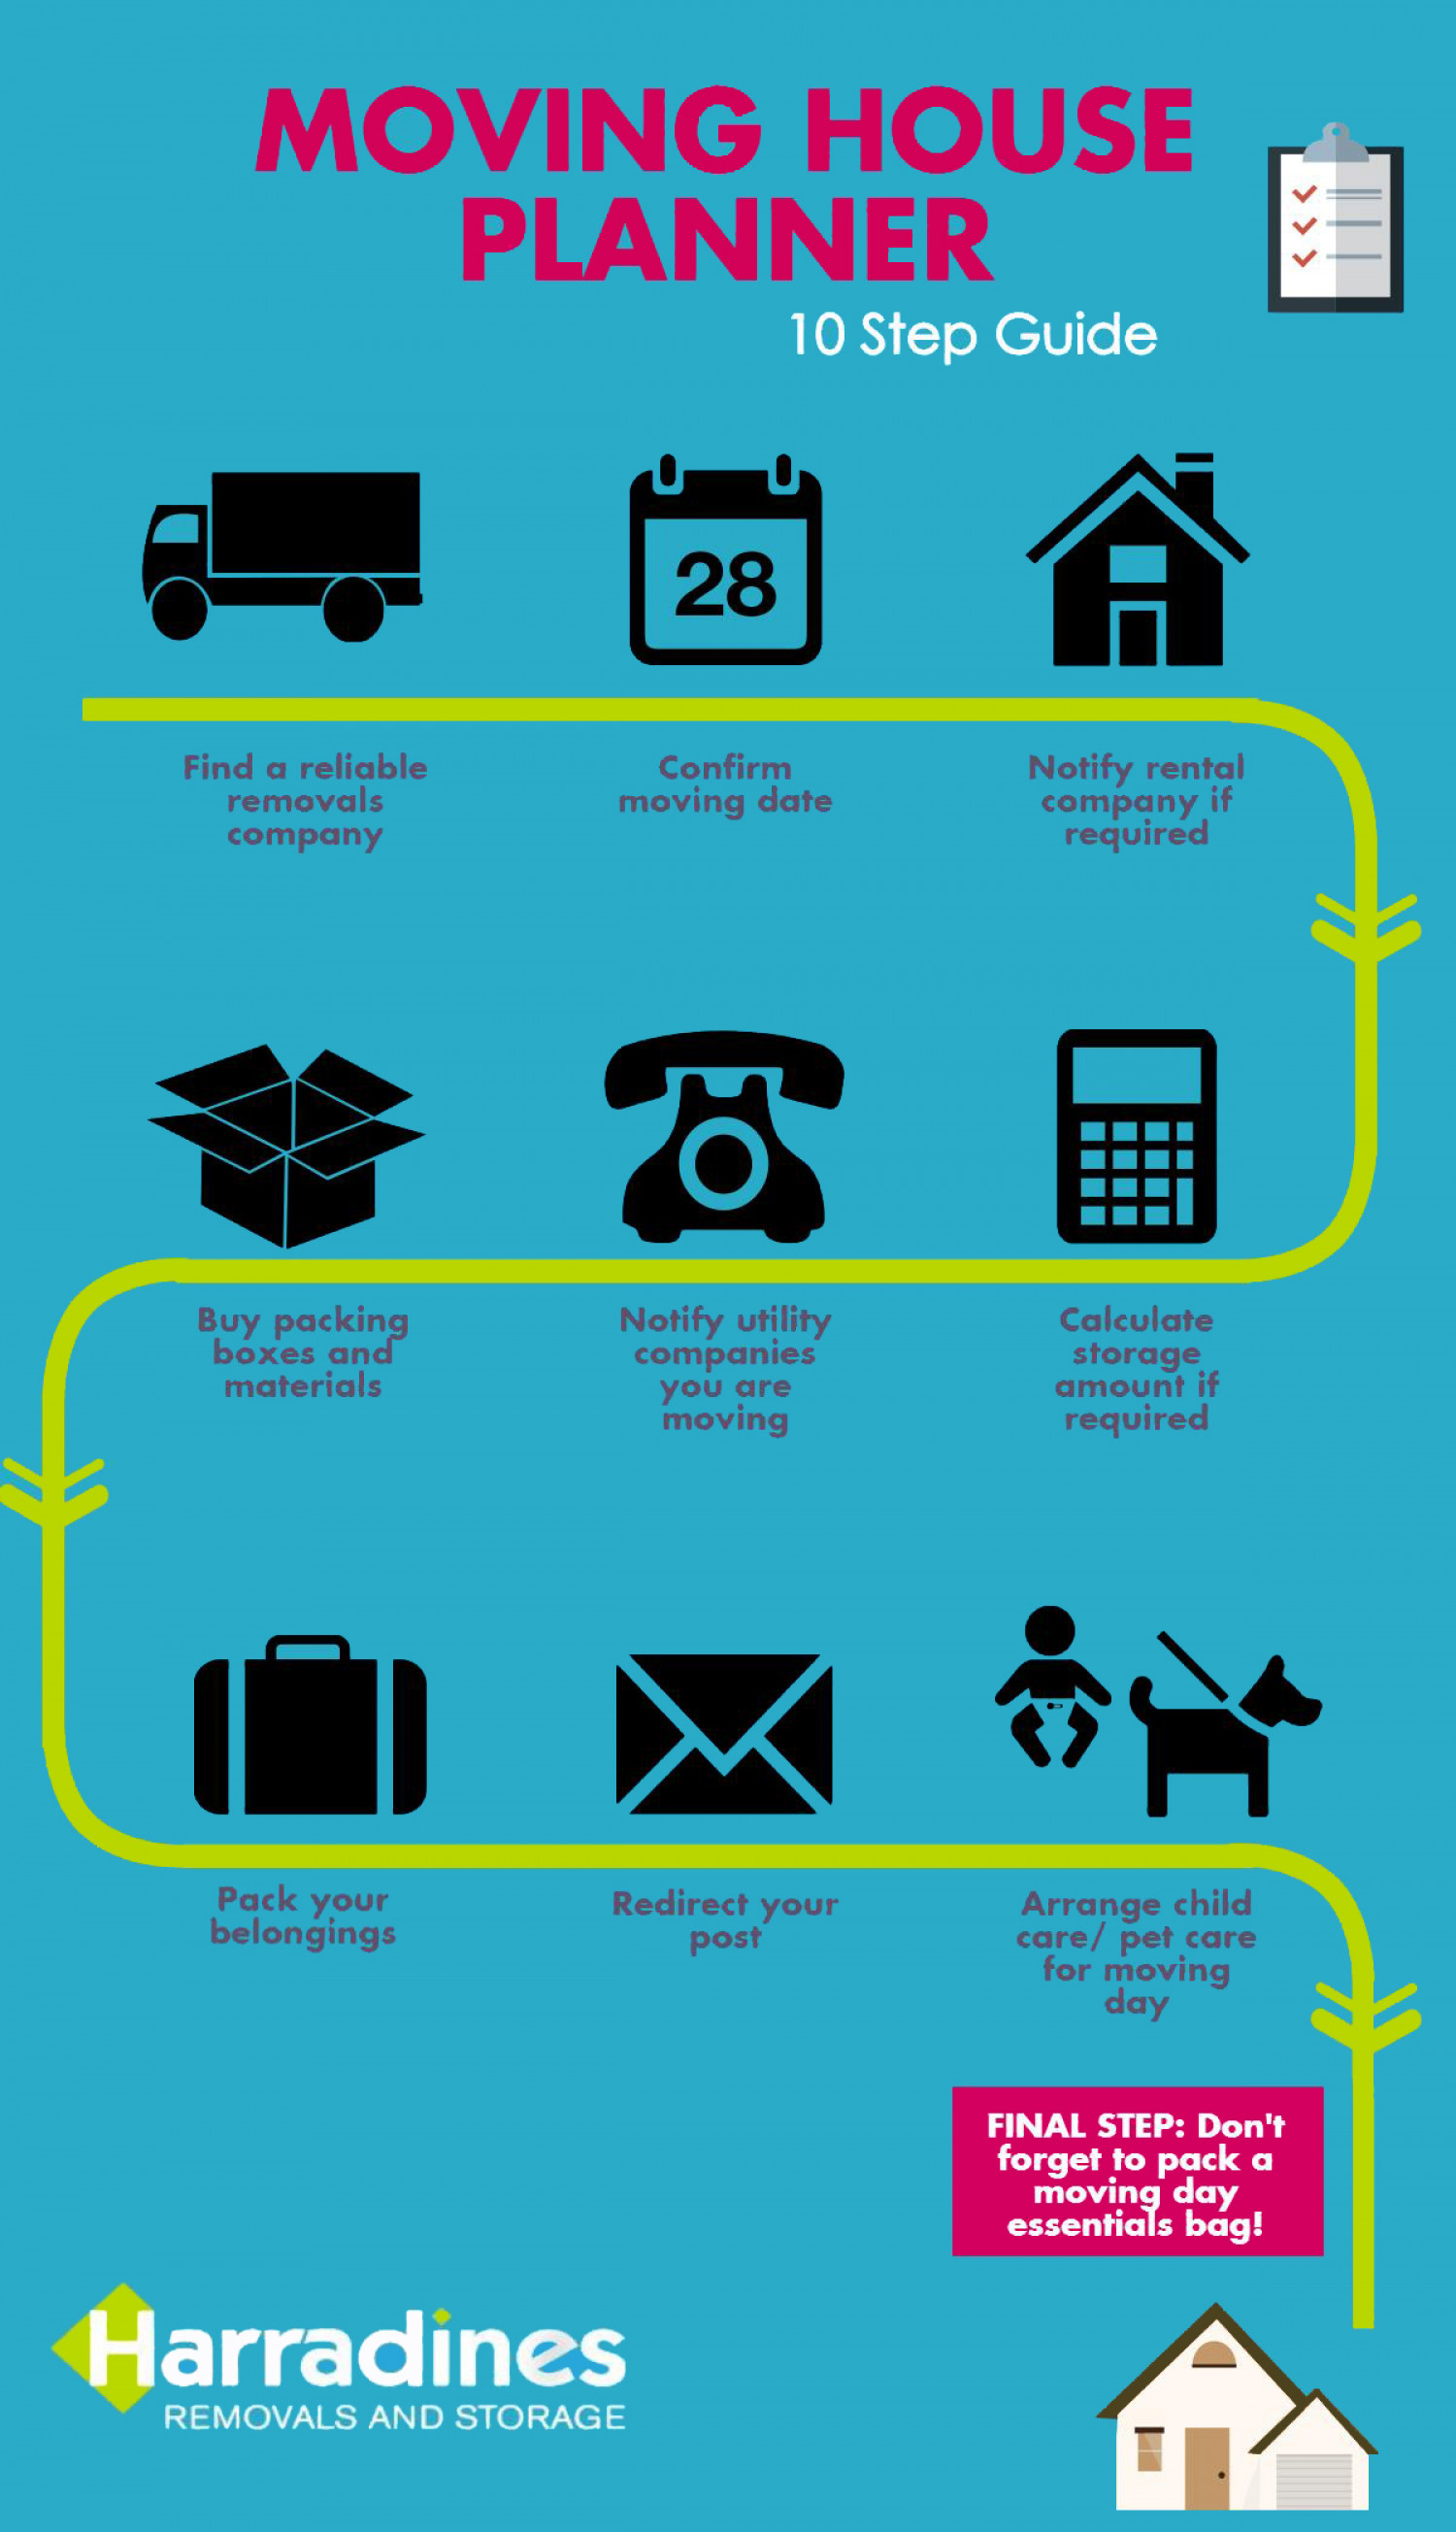 Moving House Planner - 10 Step Guide Infographic